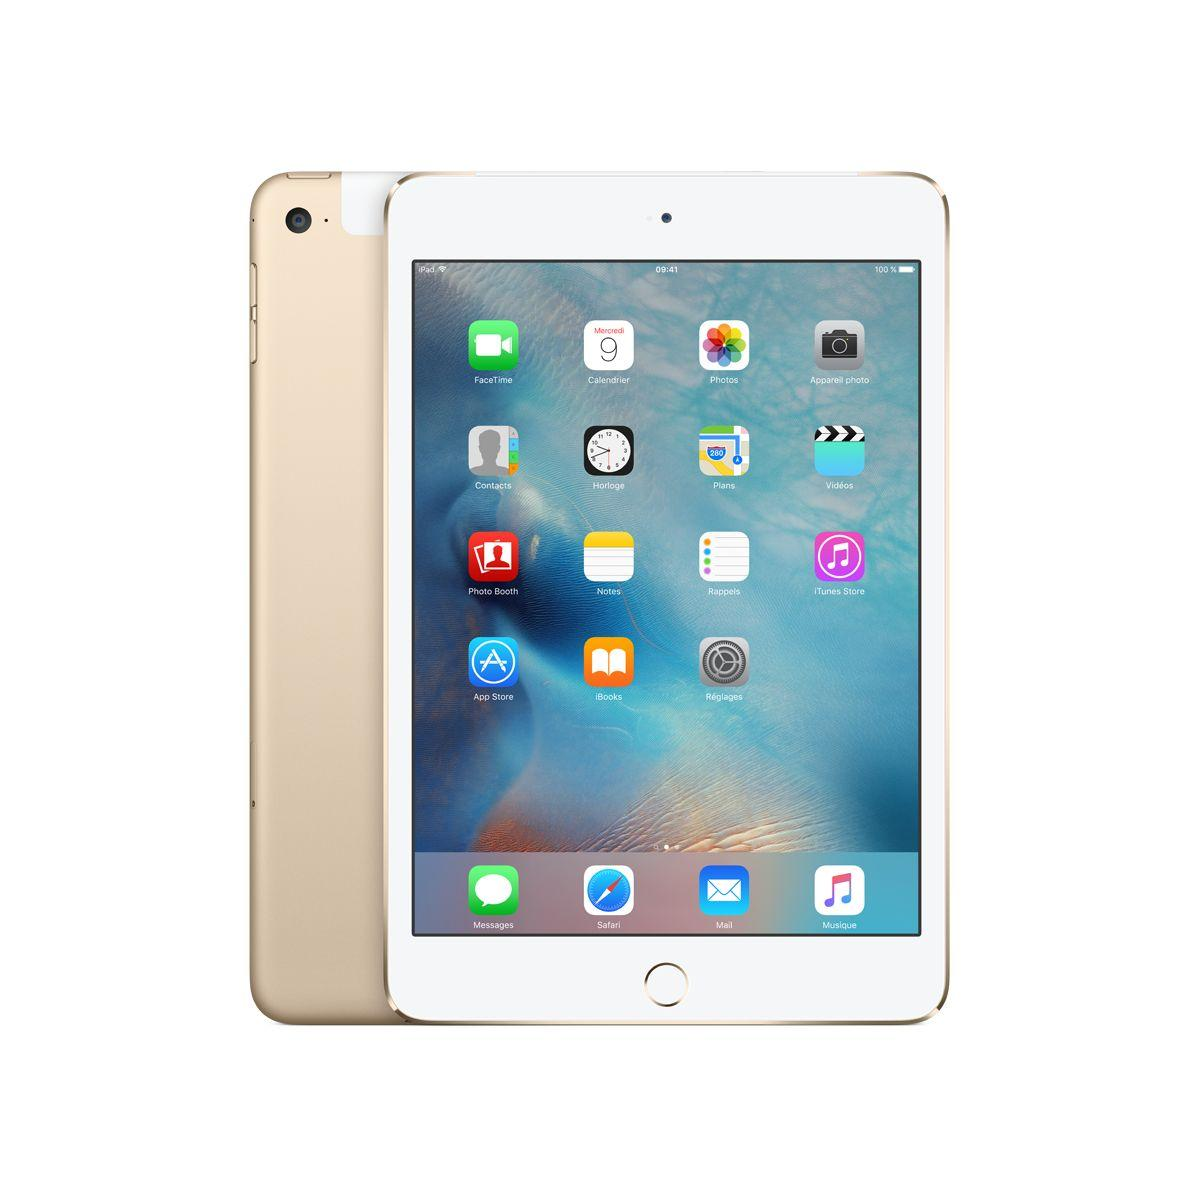 Apple ipad mini 4 128go cellular or - livraison offerte : code livrelais (photo)